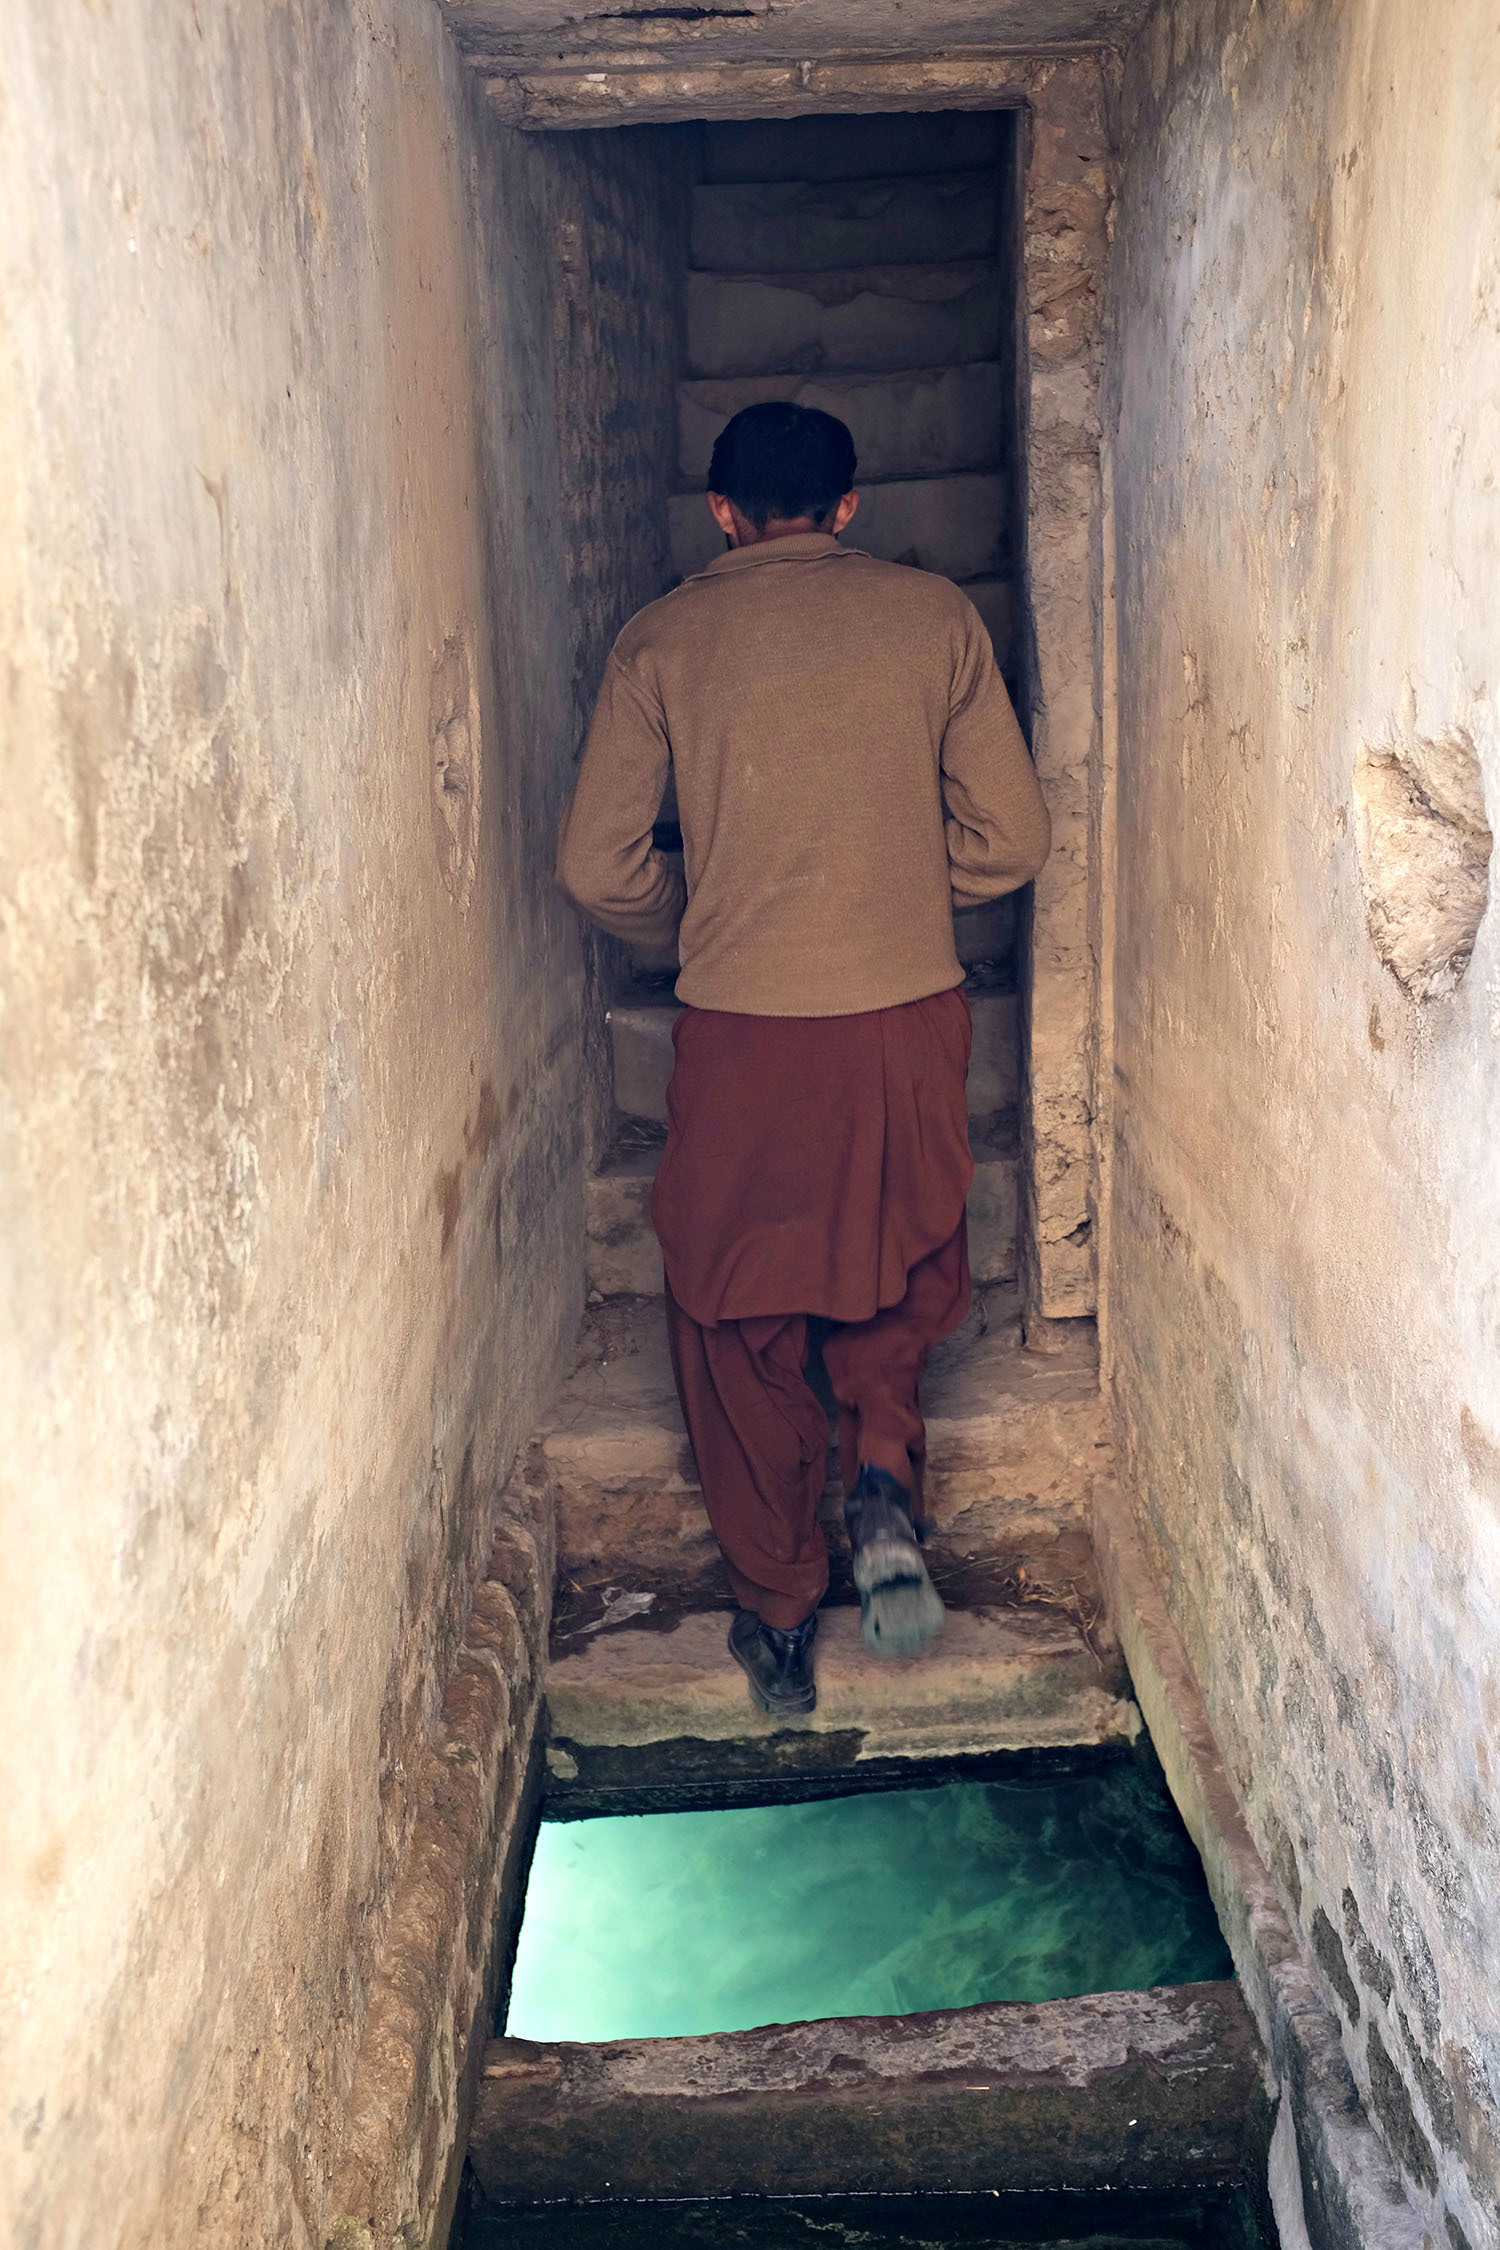 A guide takes me to a corner on ground level where women used to bathe in isolation.